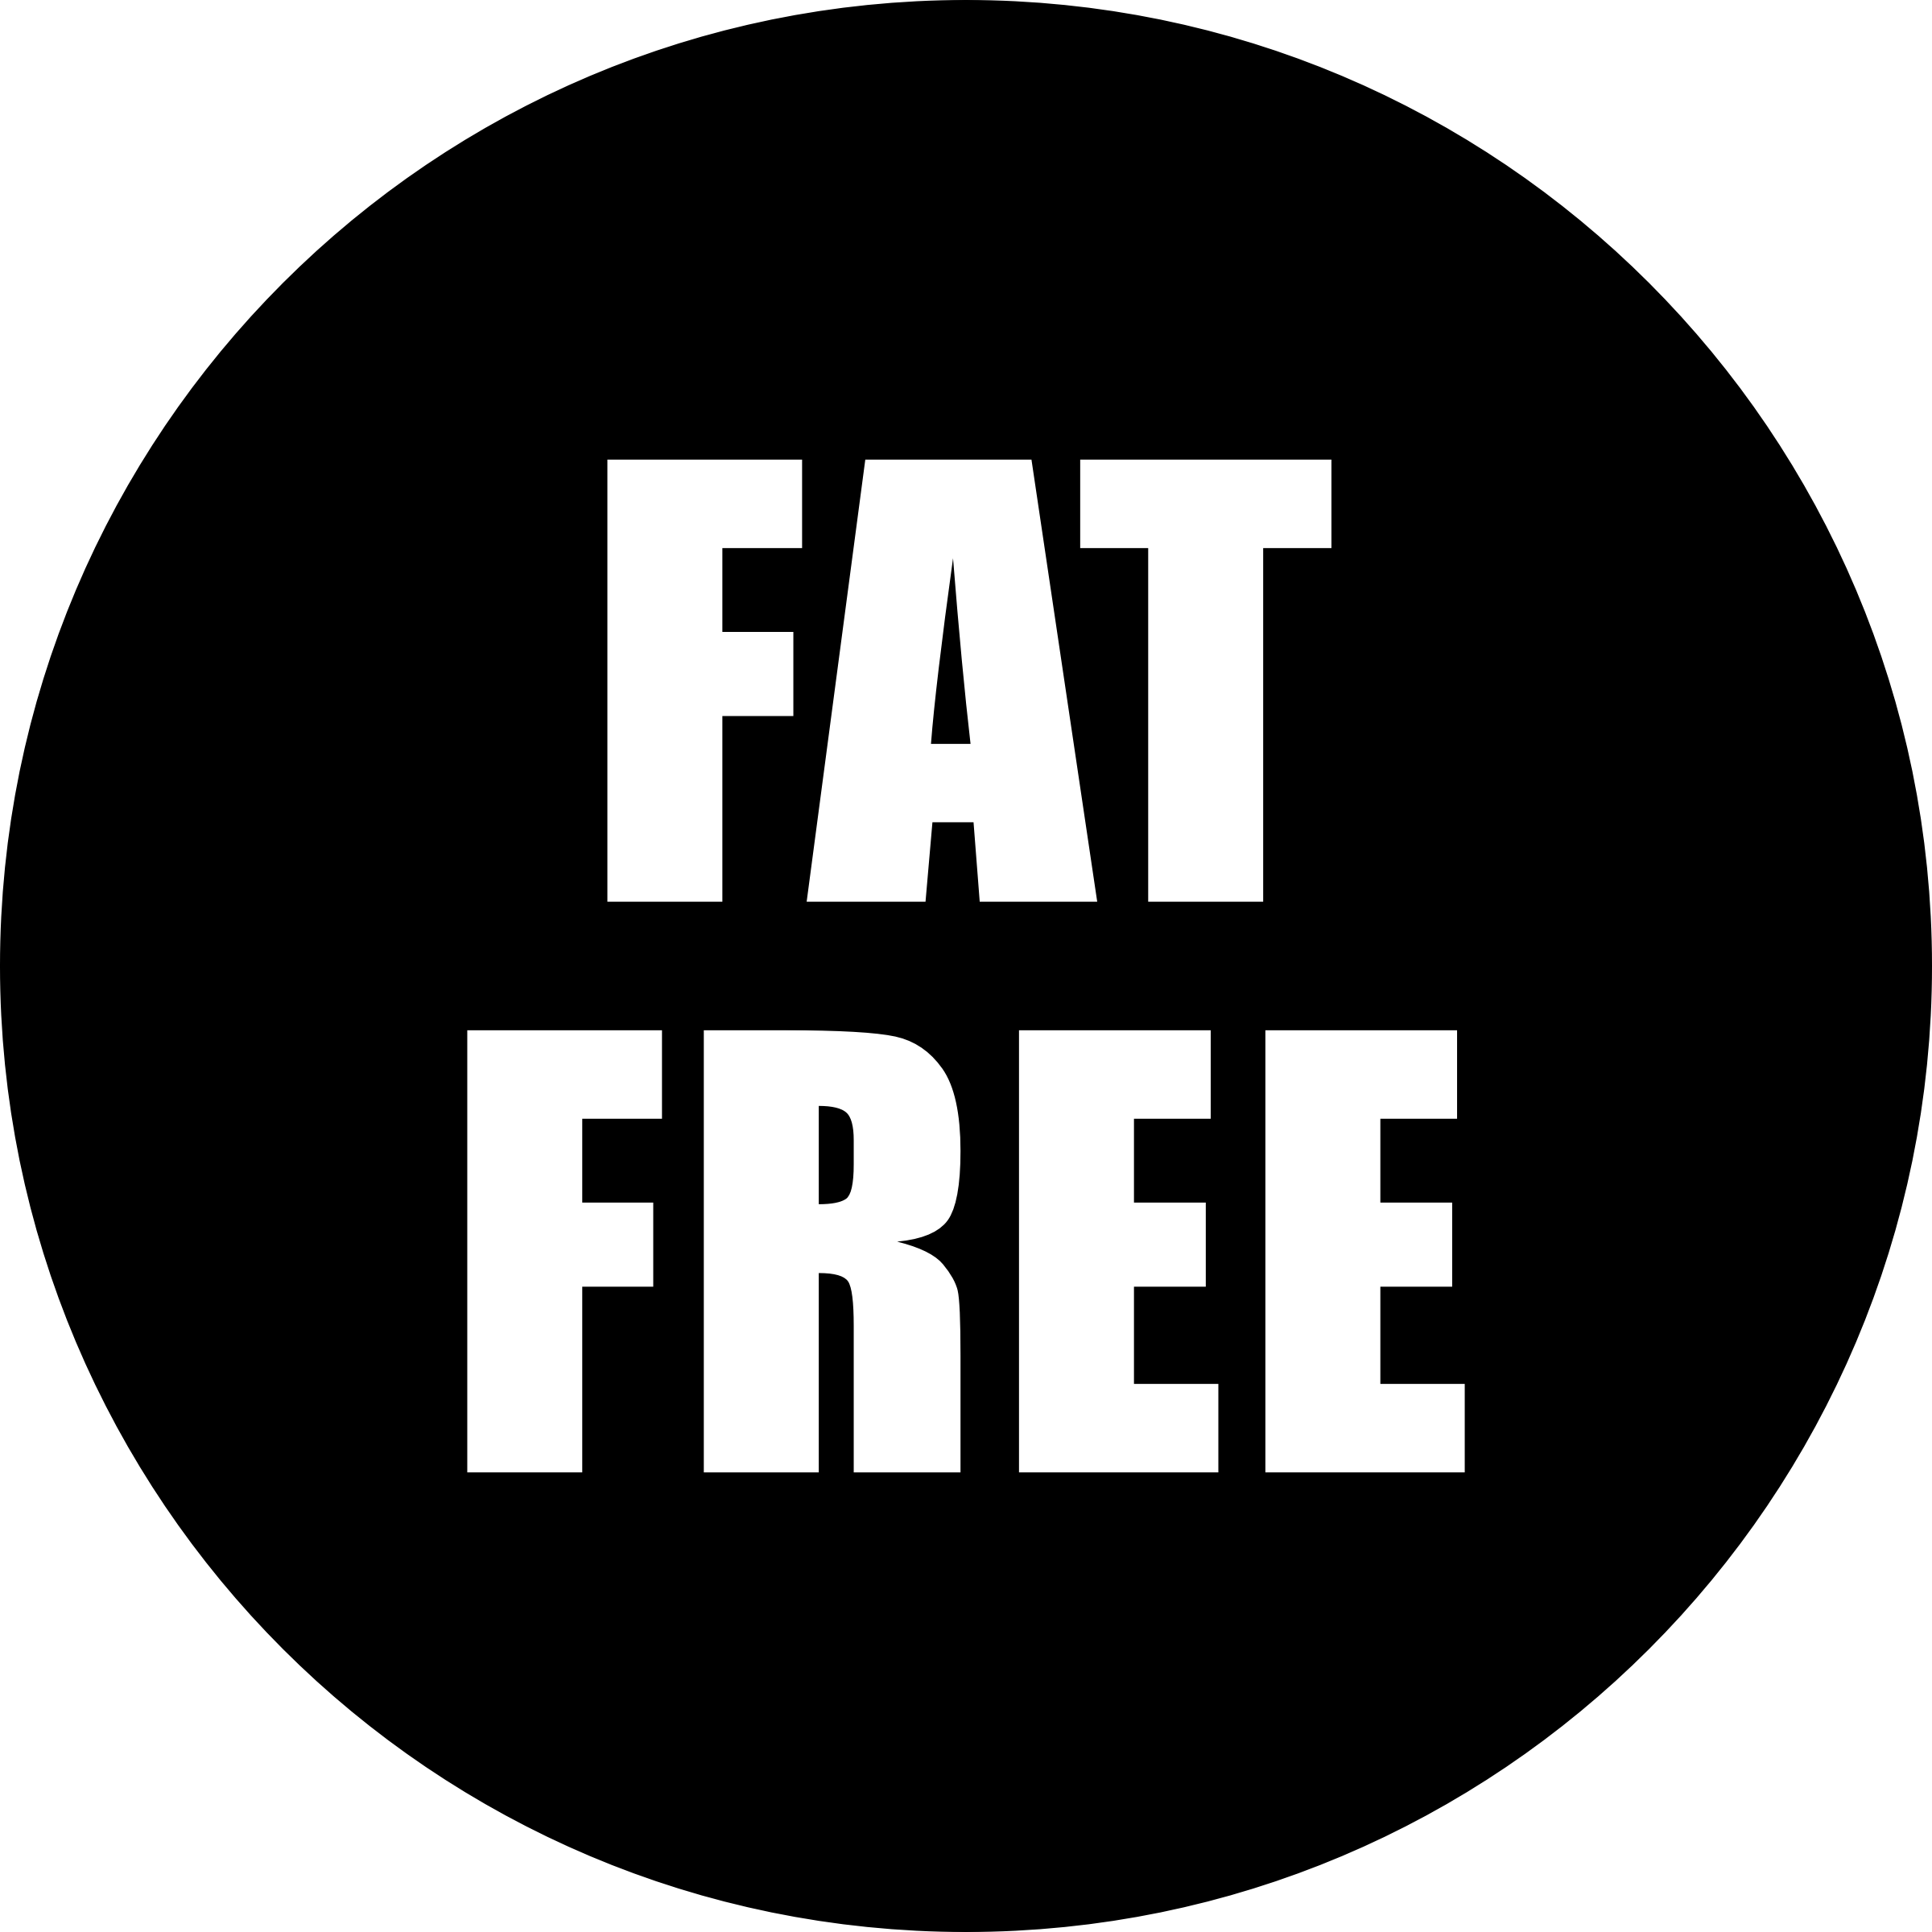 Fat clipart healthy thing. Free icon black big